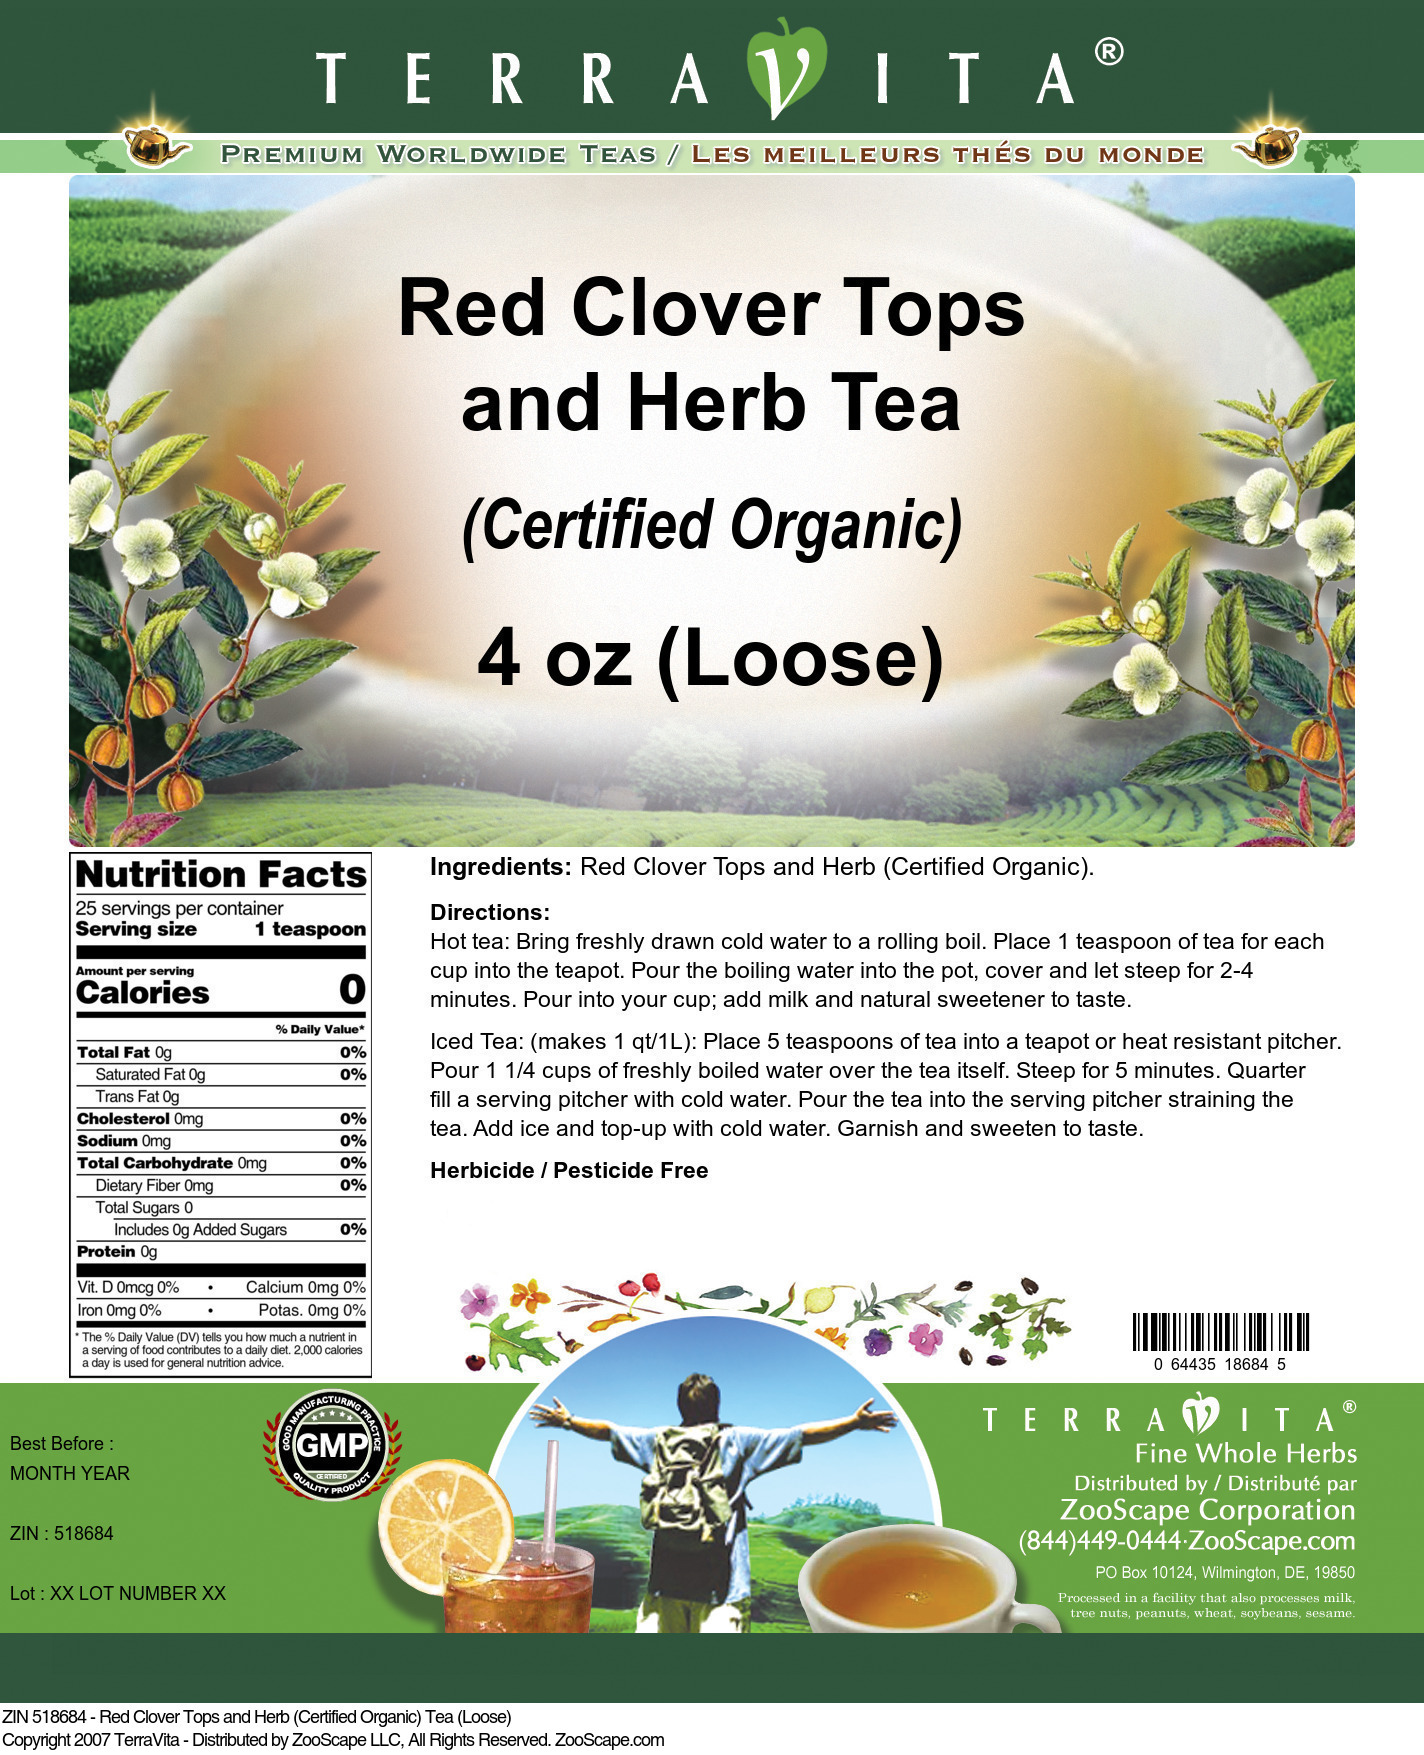 Red Clover Tops and Herb (Certified Organic) Tea (Loose)